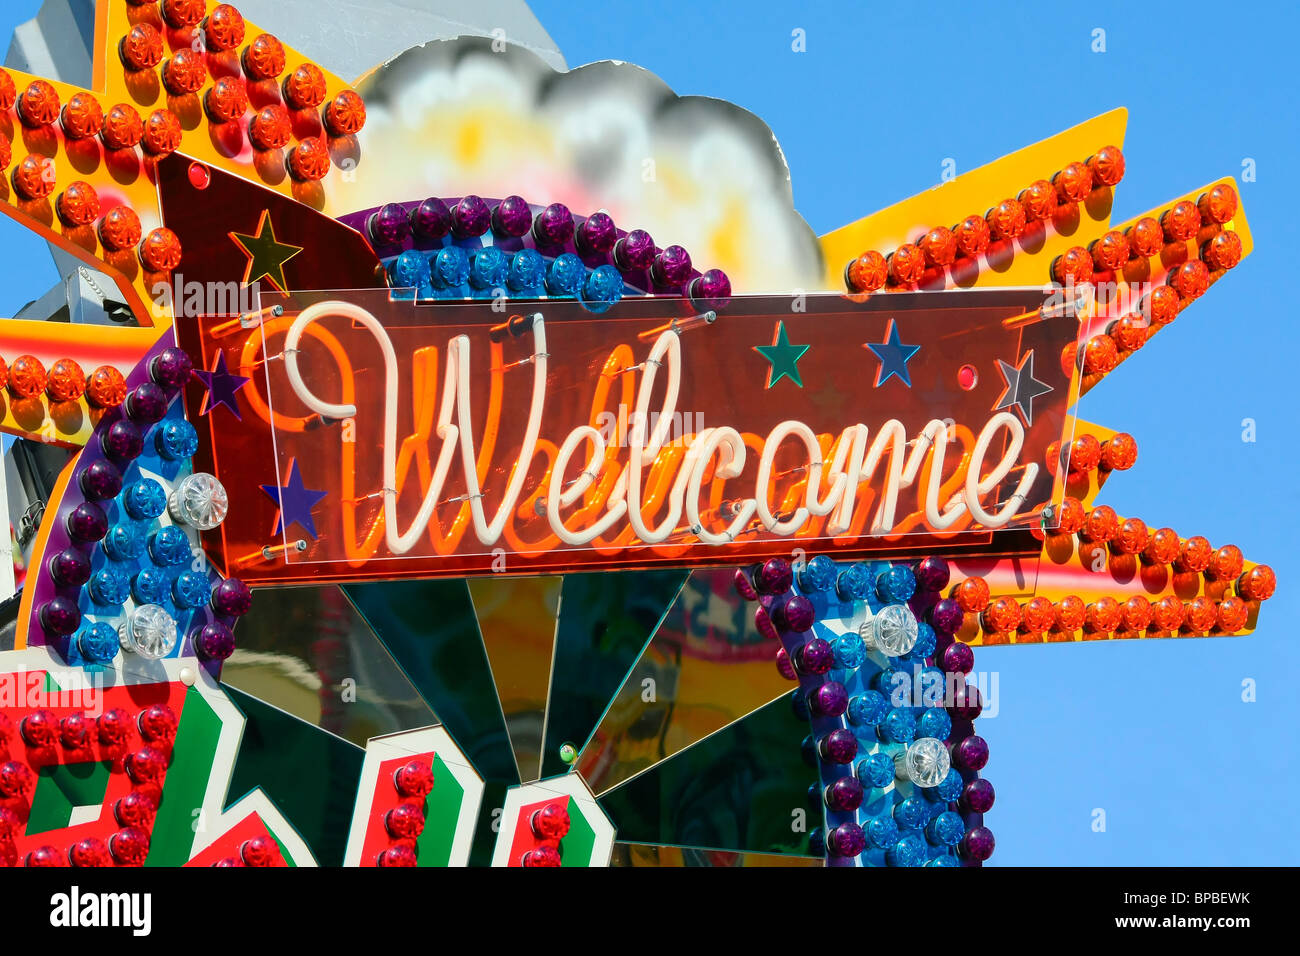 welcome sign - Stock Image